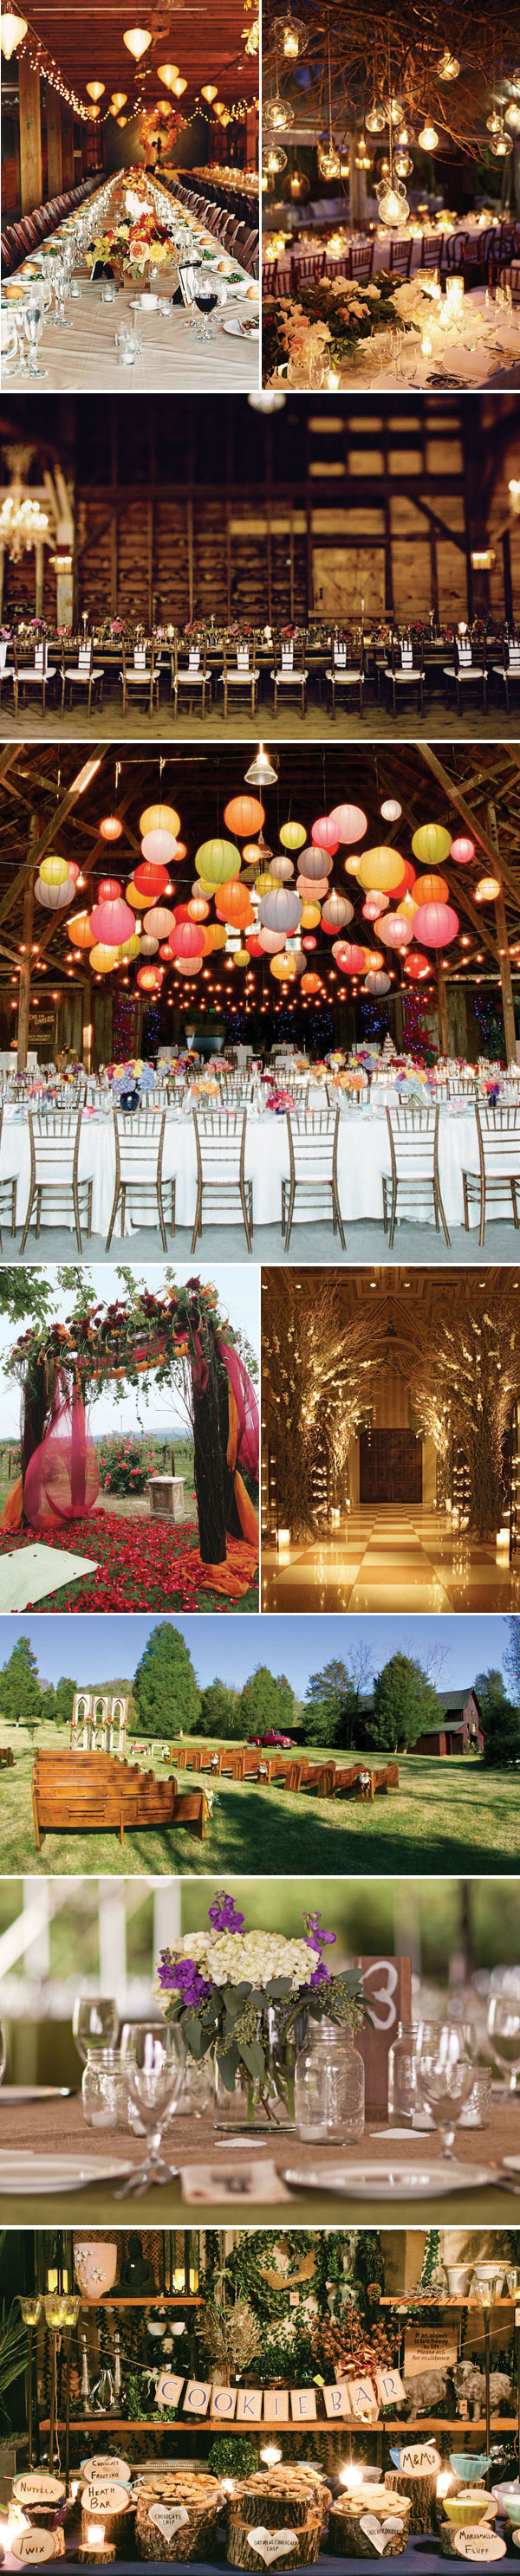 rustic-wedding-decor-2 (1)